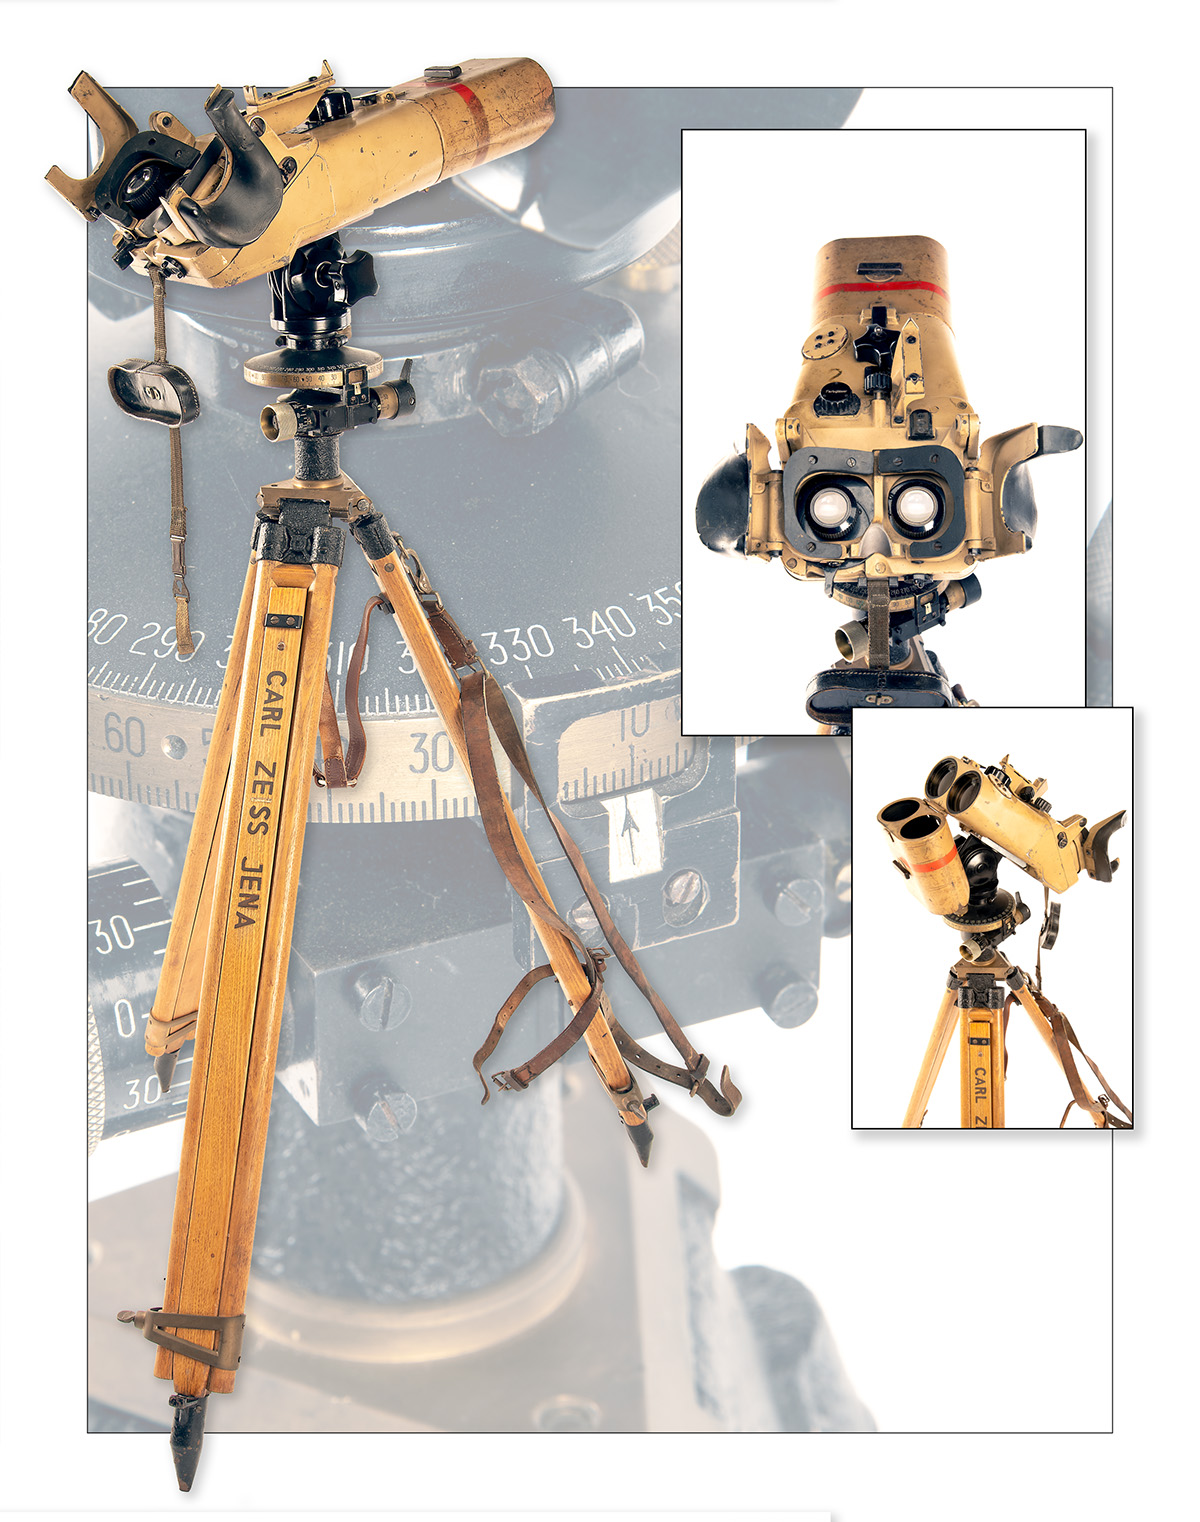 CARL ZEISS, JENA A RARE PAIR OF 12x60 INCLINED FLAK RANGING BINOCULARS WITH TRIPOD, serial no. - Image 7 of 7